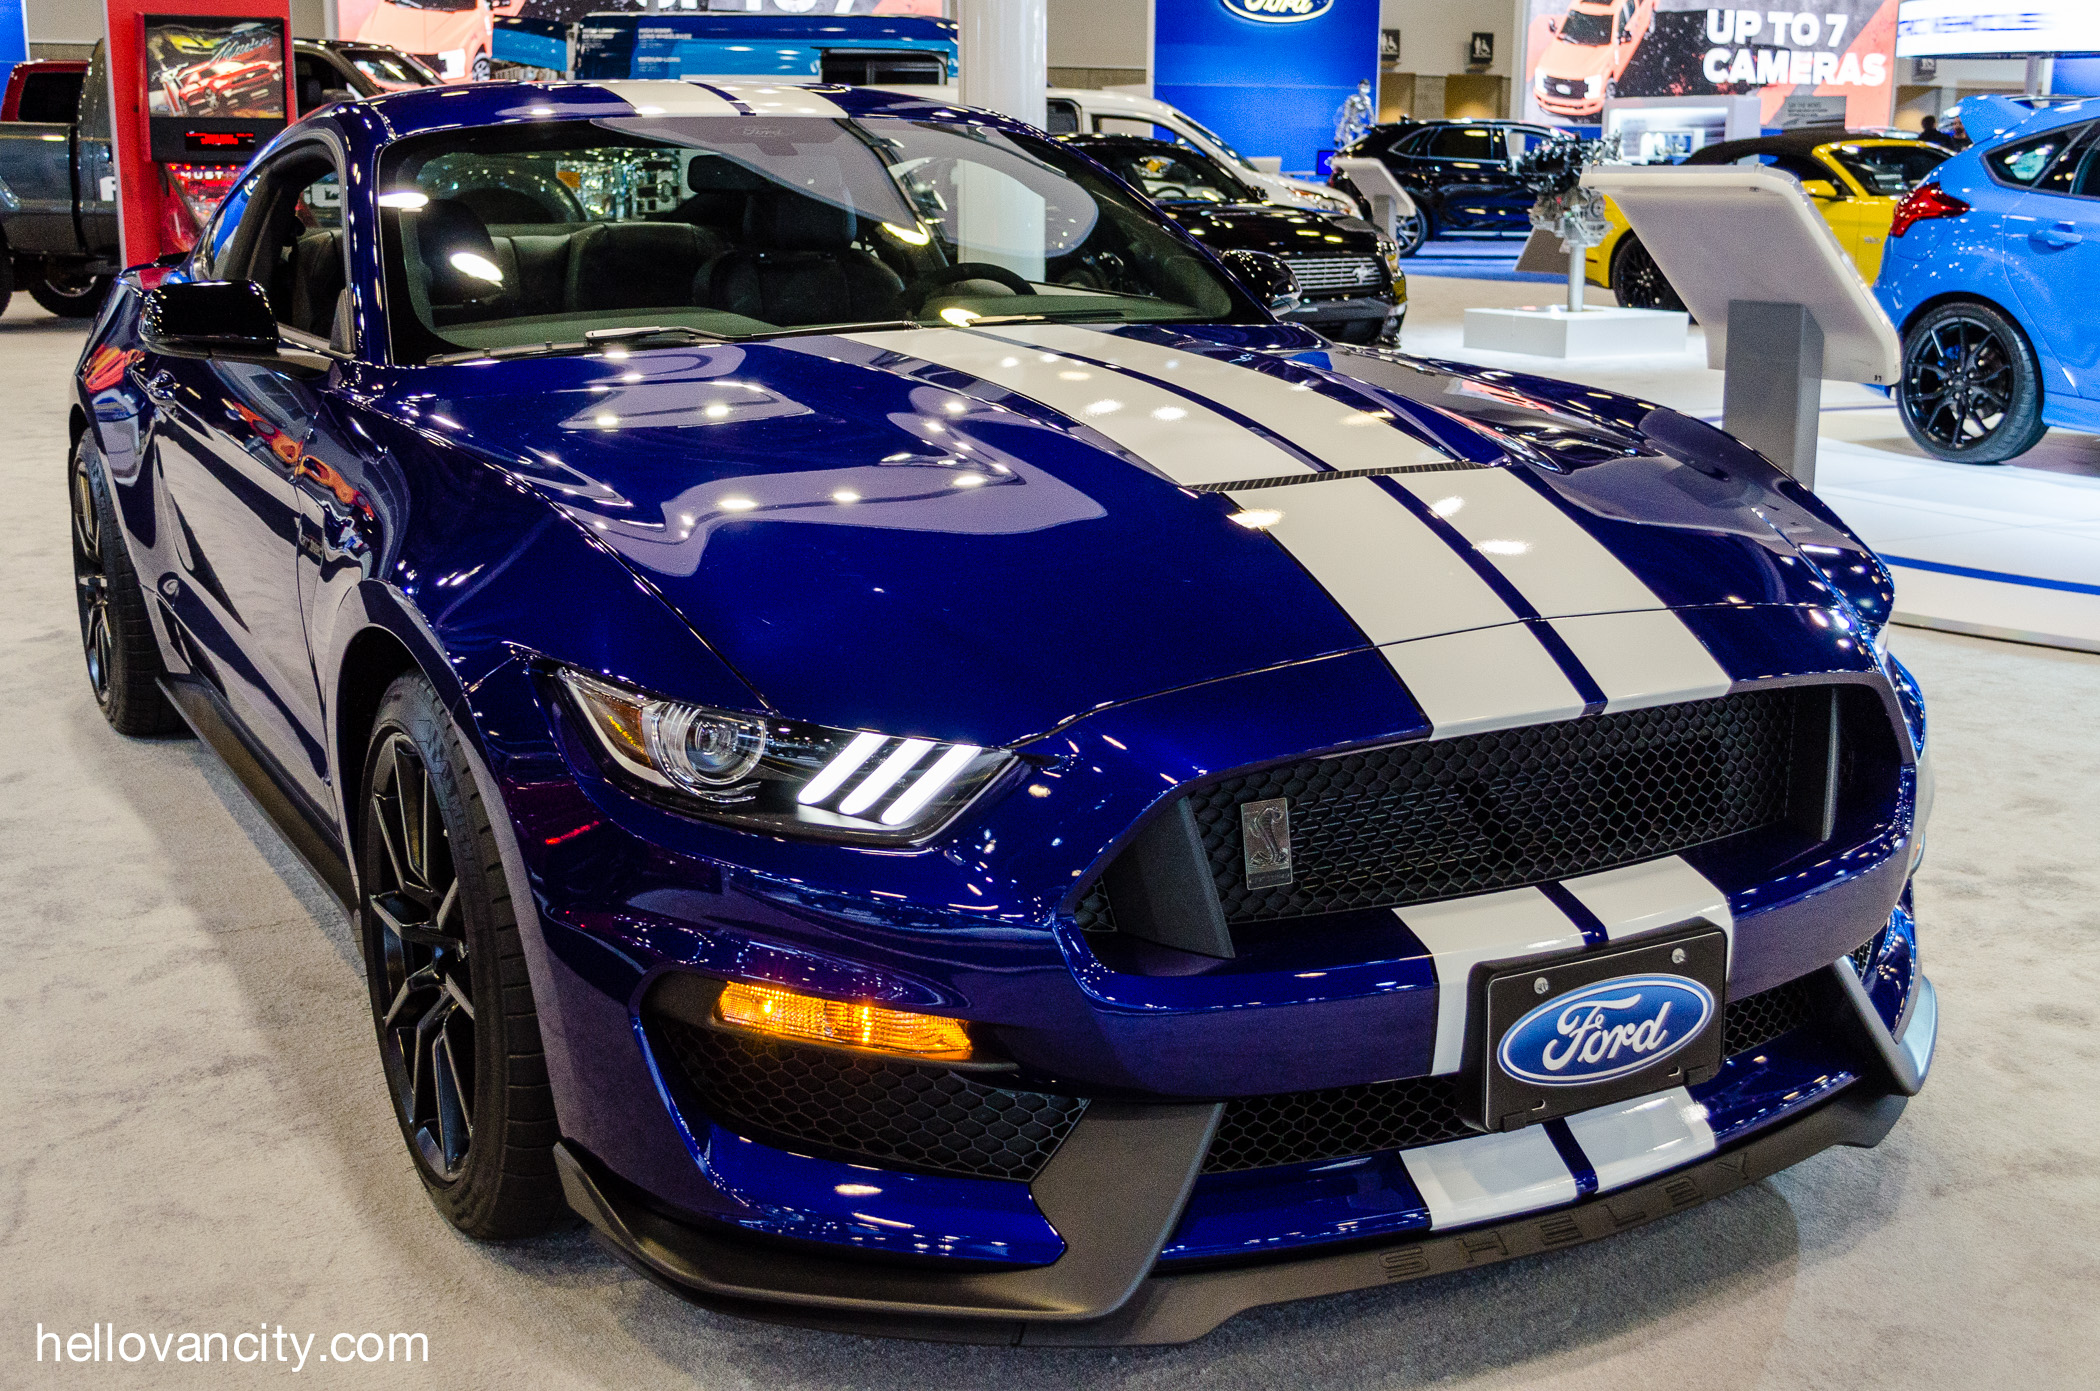 2017 Ford Line Vancouver Auto Show moreover 2017 Ford Fusion V6 Sport First Drive Review together with 2019 Ford Edge St Arrives With 335 Horsepower likewise 1017077 first 2016 Ford Mustang Shelby Gt350r Fetches 1 Million In Record Barrett Jackson Auction in addition 1091694 racing Your Mustang Will Void Its Warranty Despite Line Lock. on 2020 ford focus rs horsepower